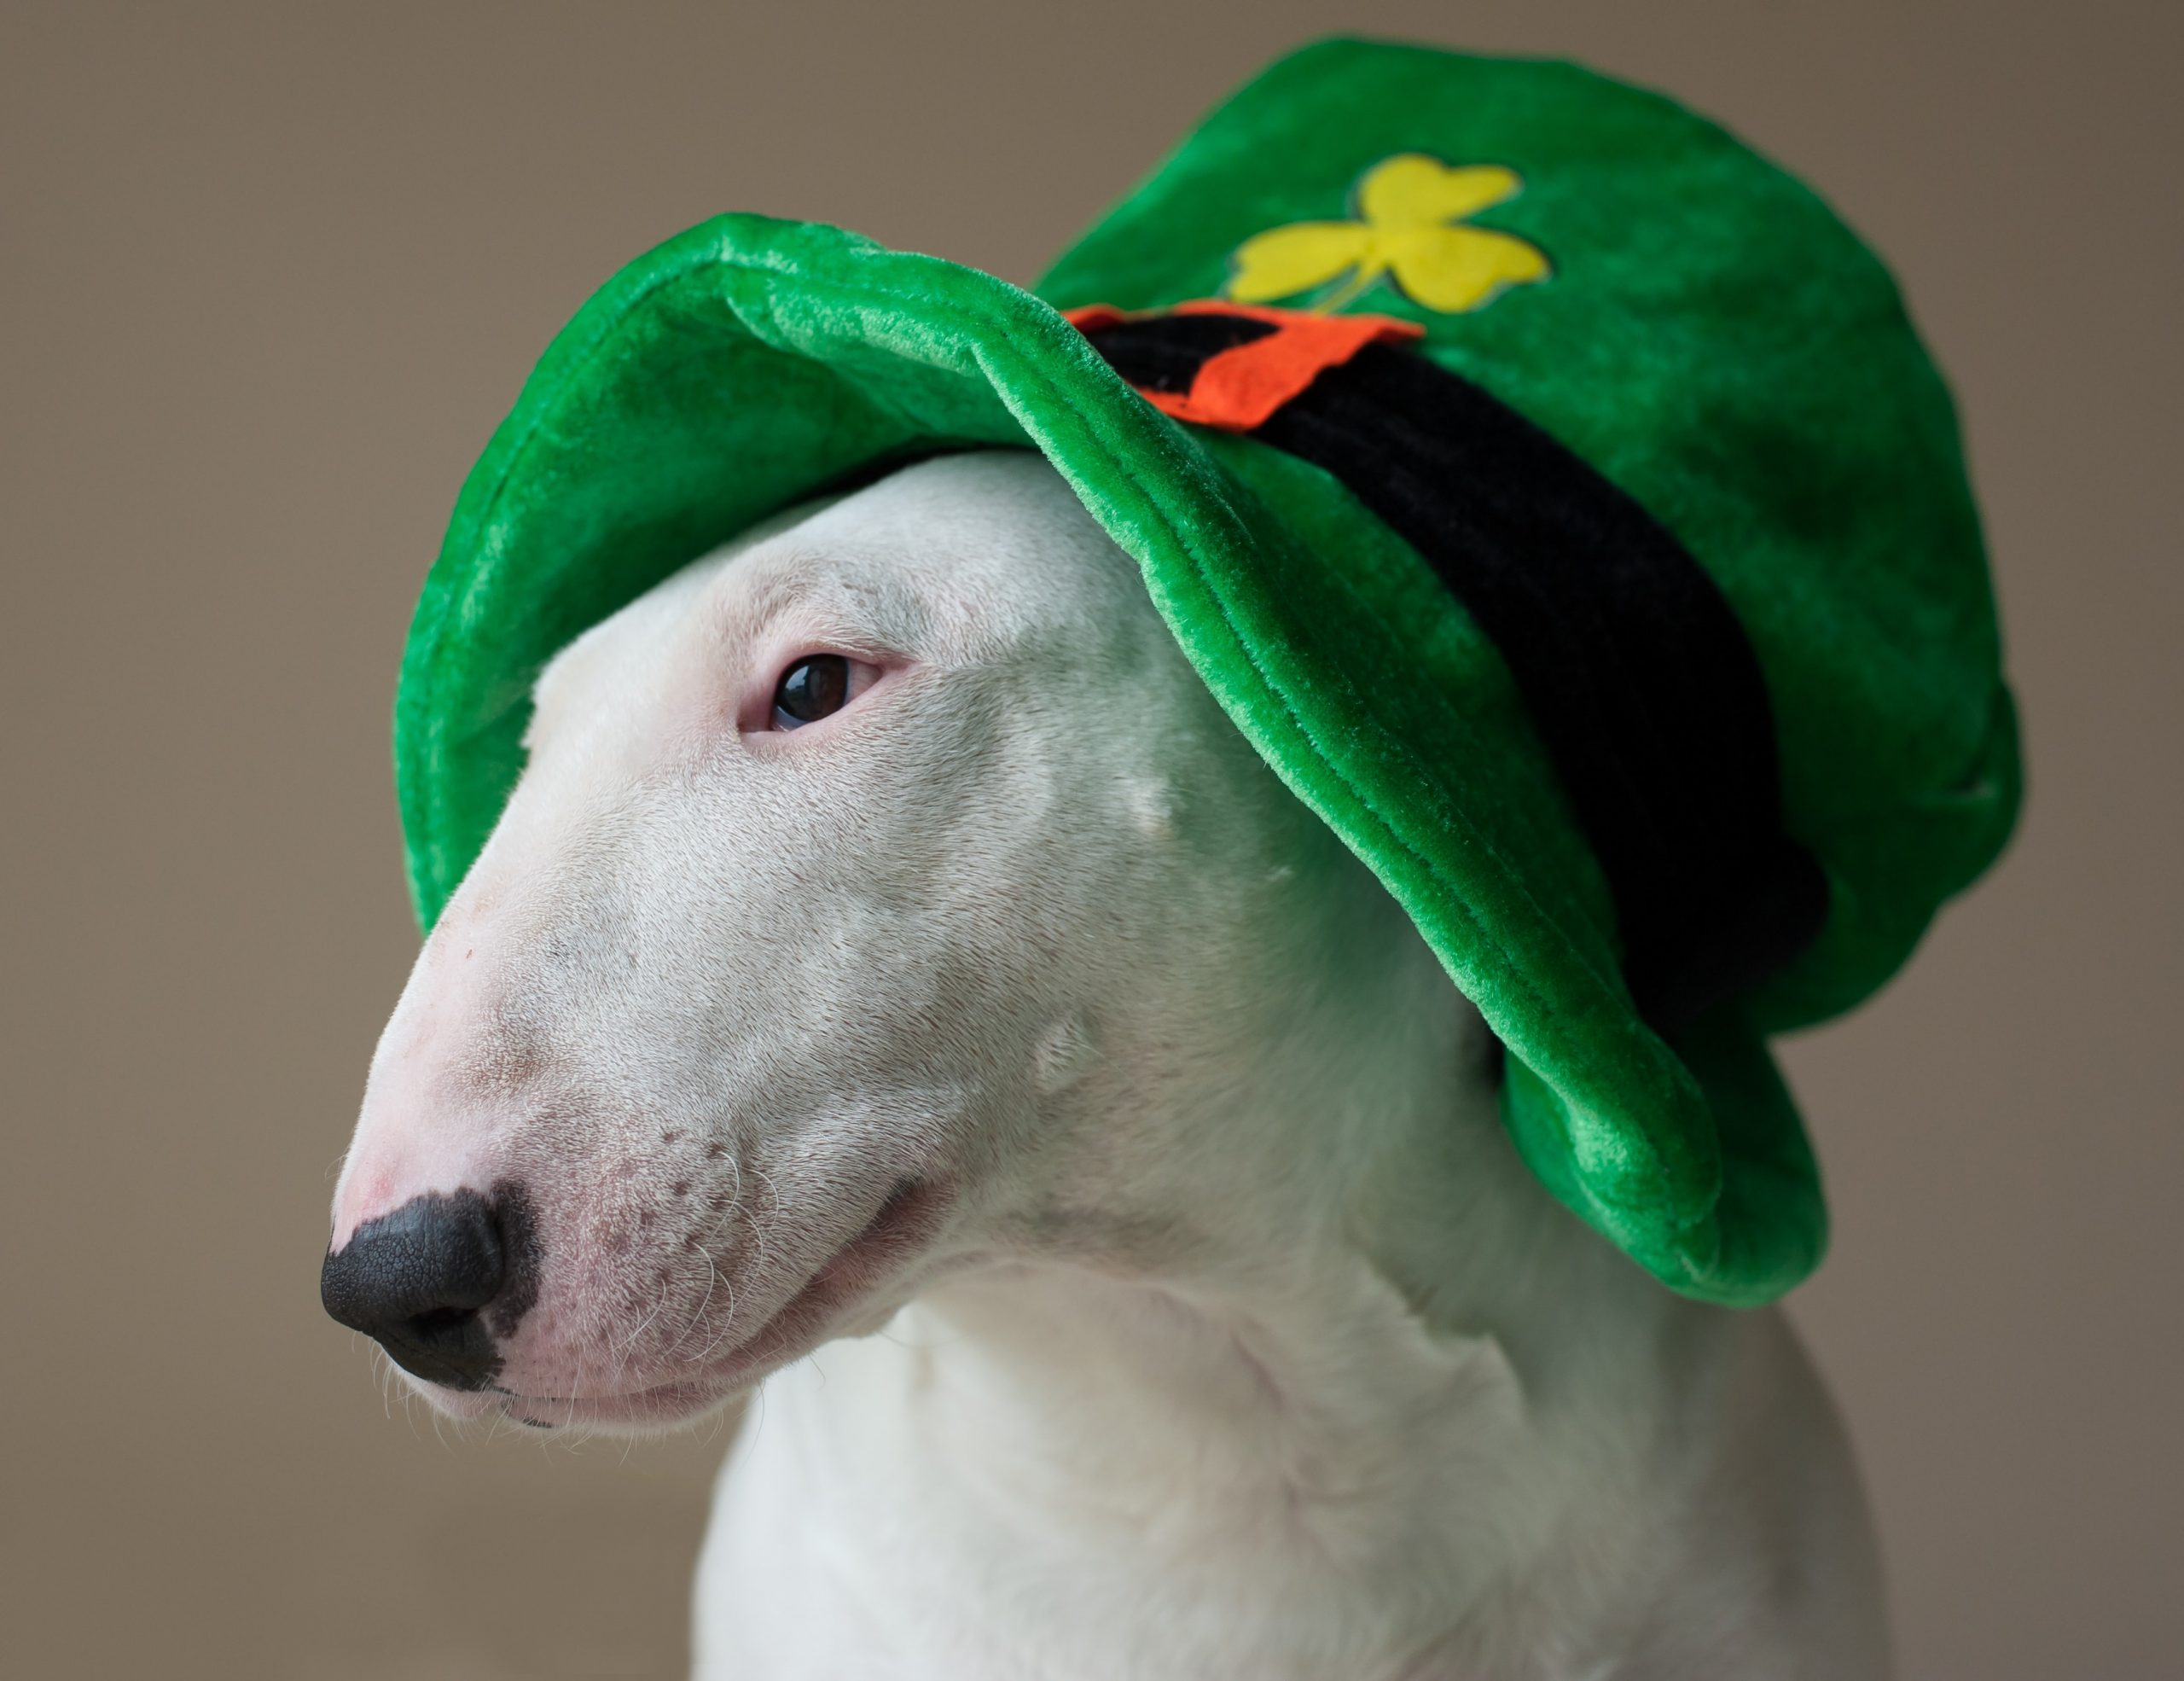 Don't pinch me! I'm not Irish! Or am I? (A St. Patrick's Day story)